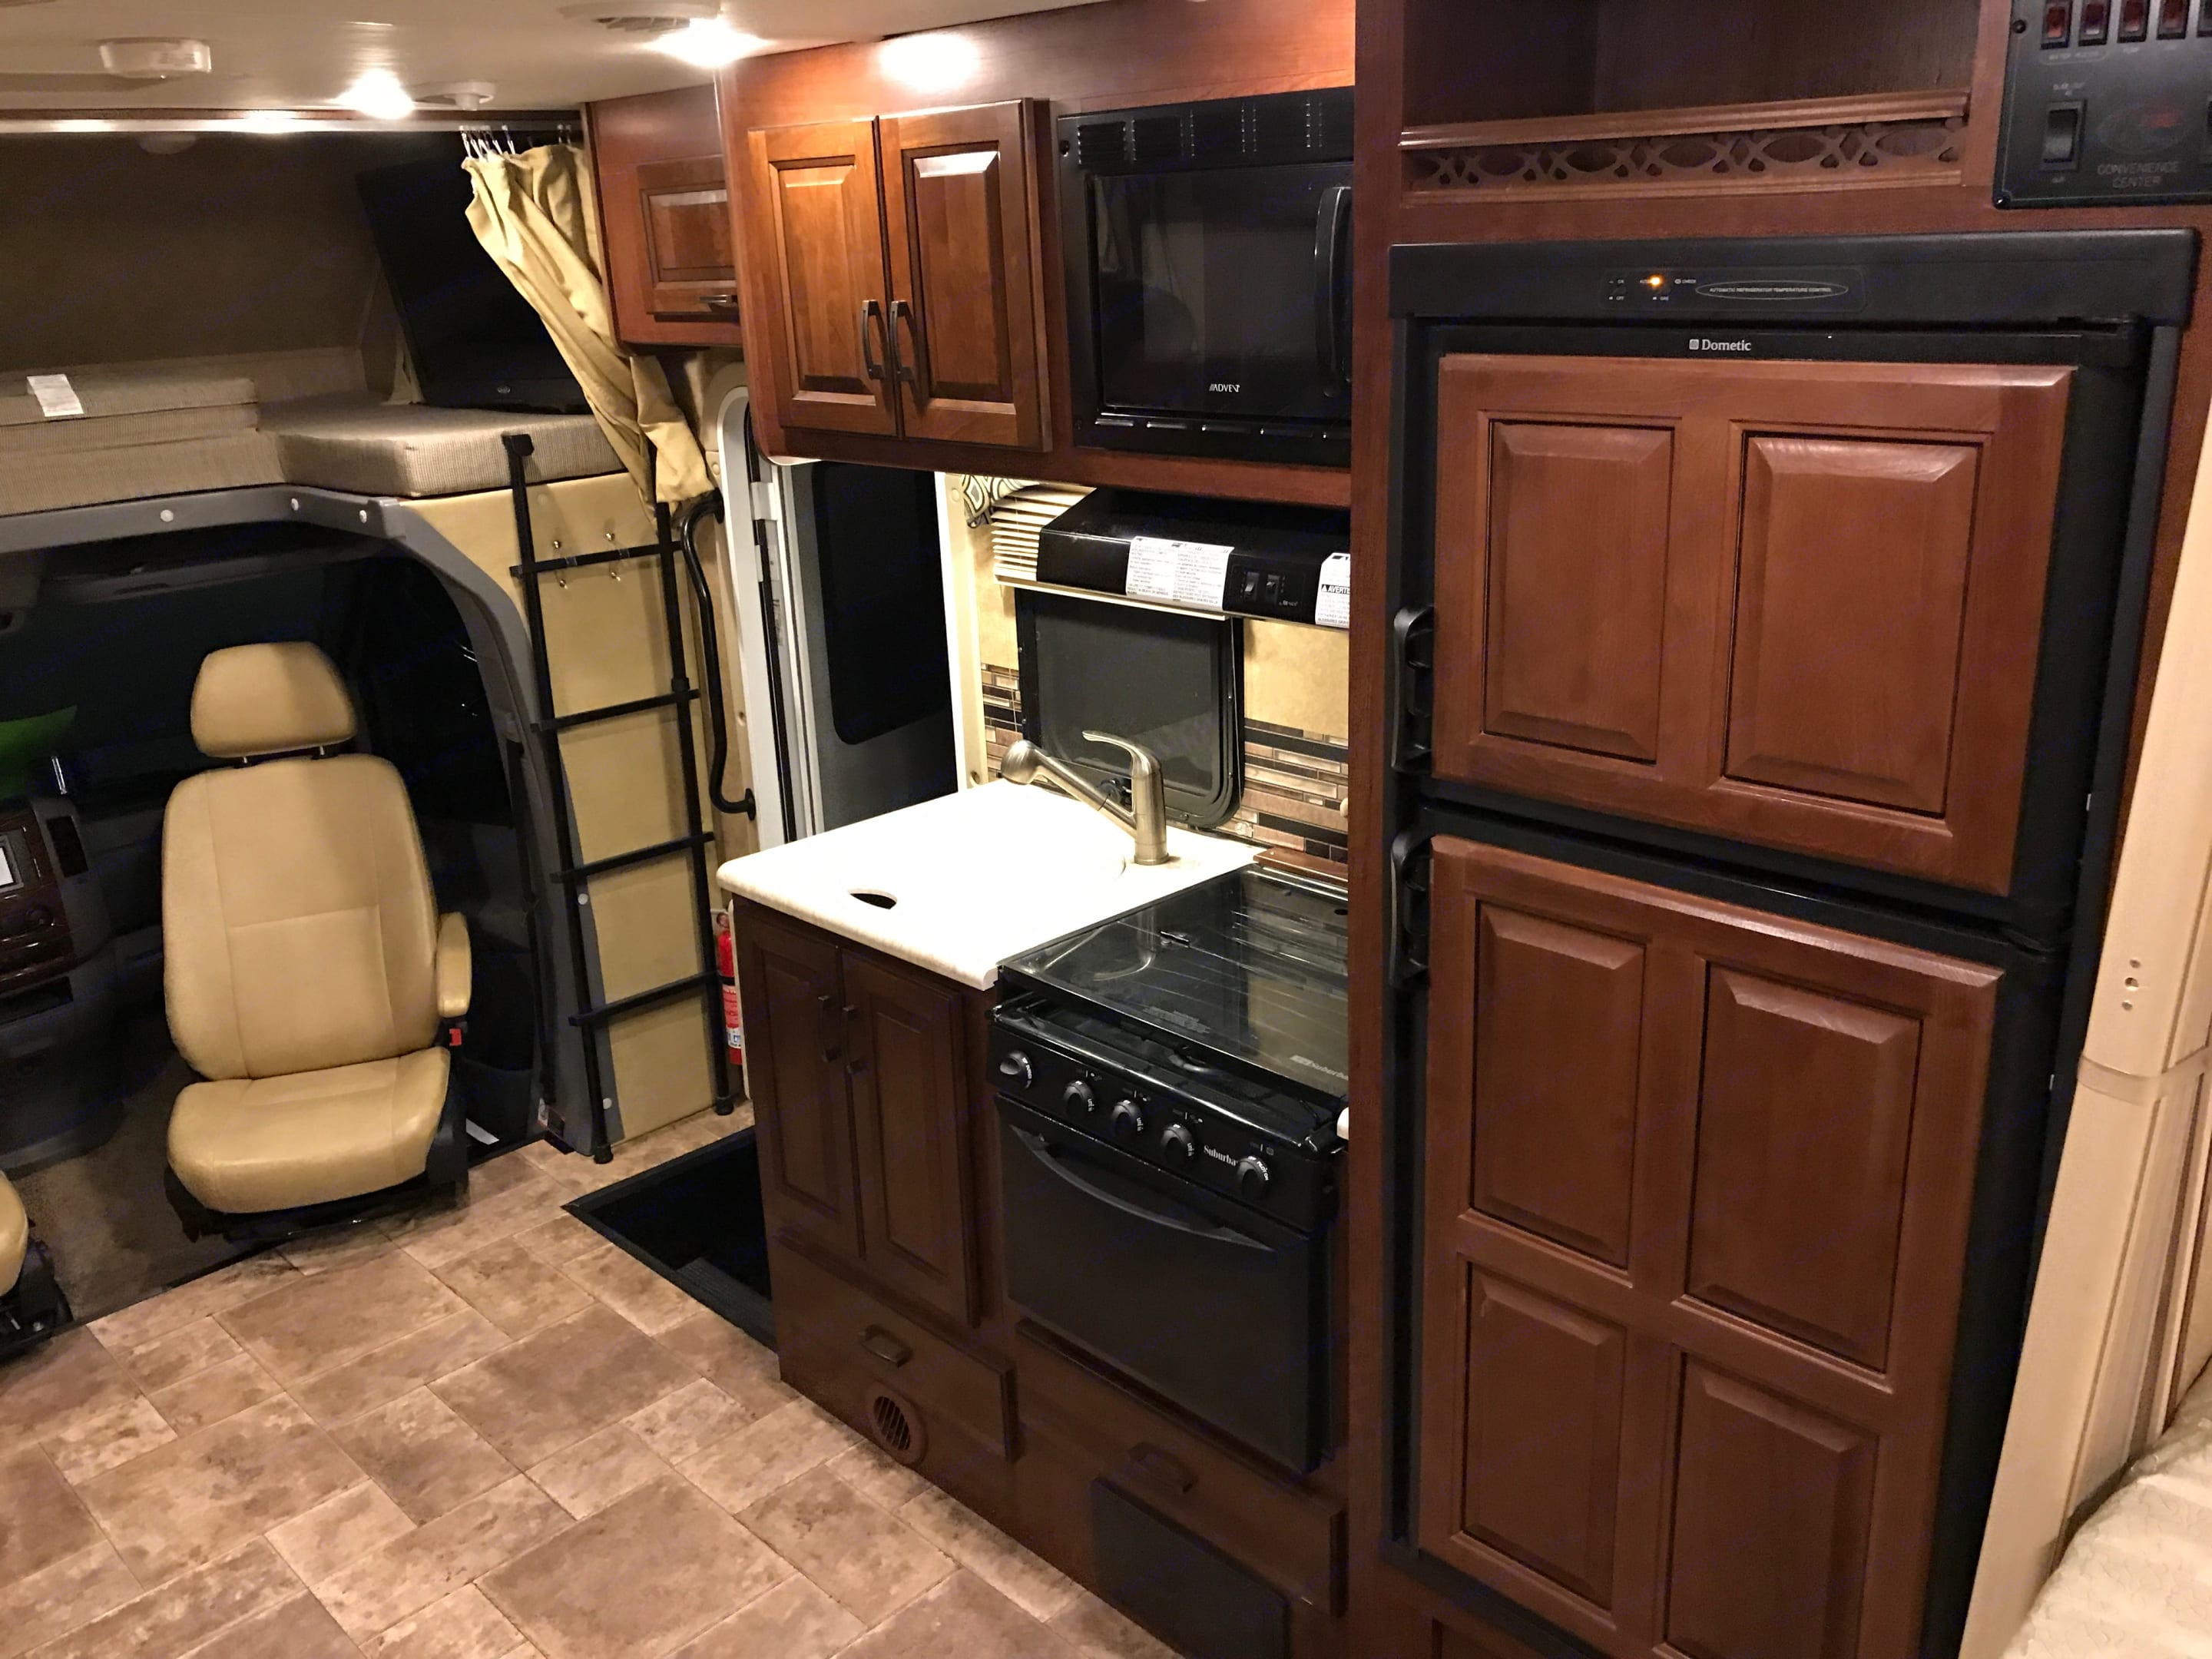 Kitchen with Microwave, Stove and Refrigerator. Forest River Solera 24S 2015